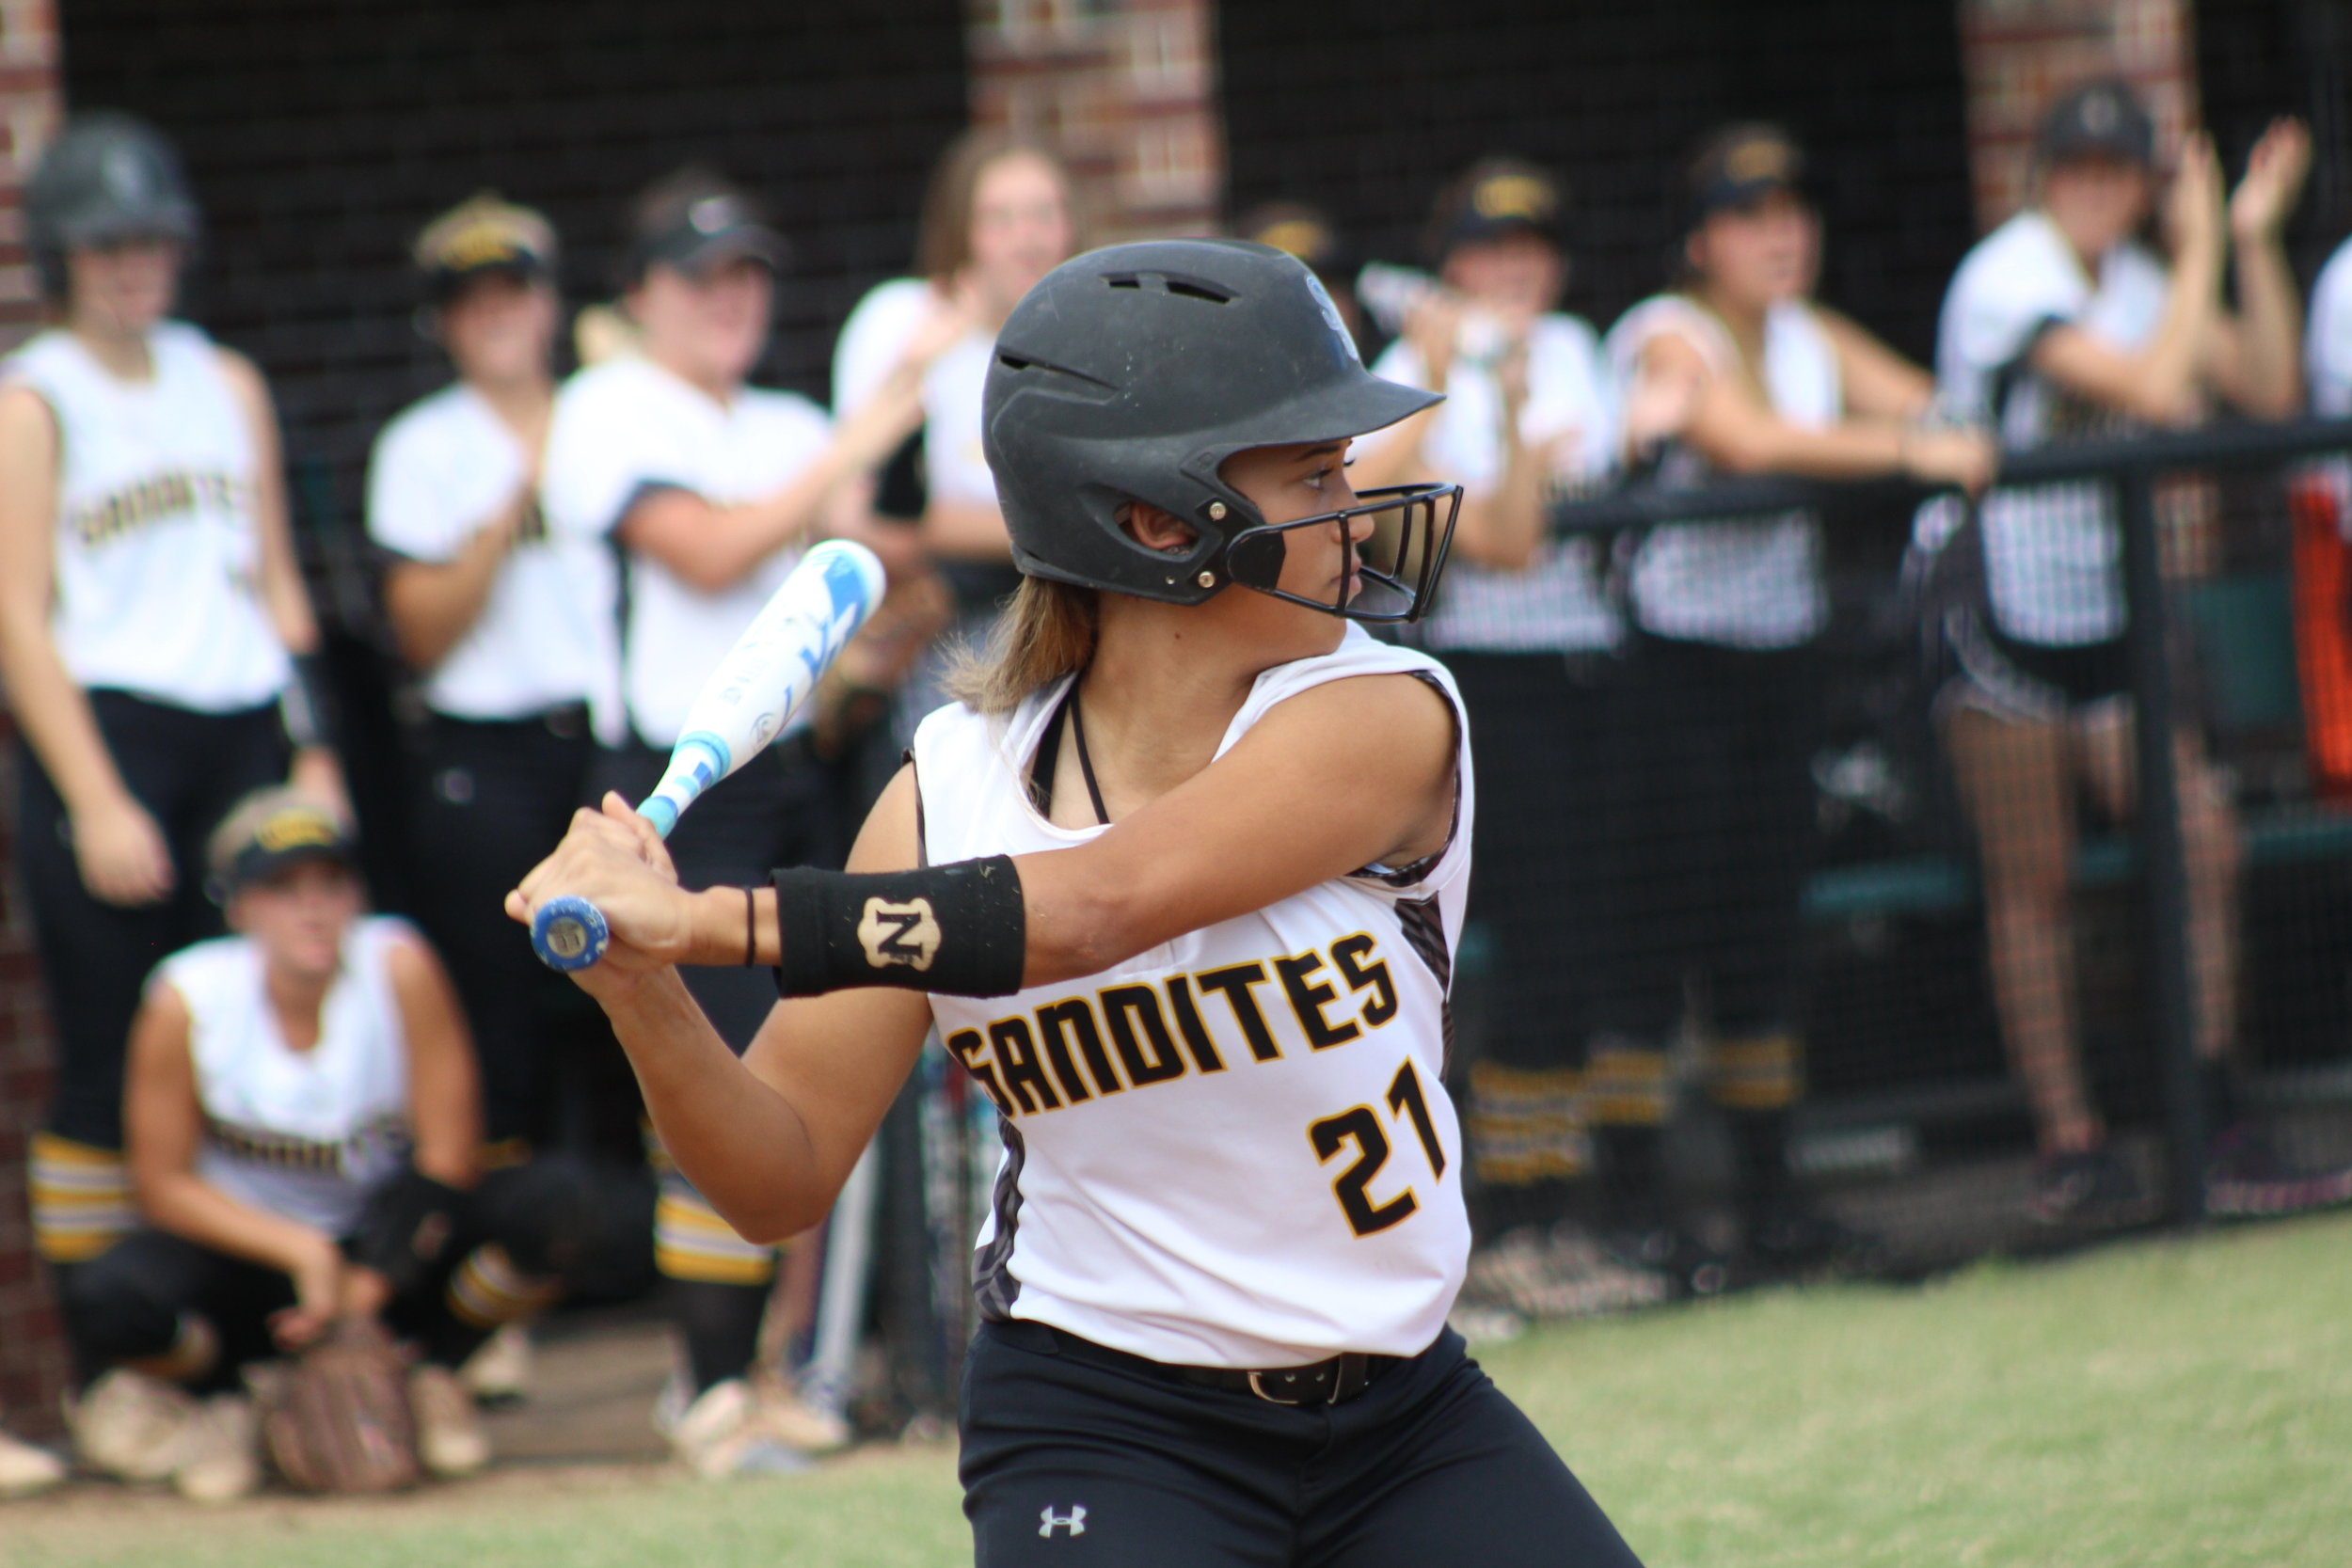 Sabrina Usher is the only Lady Sandite to hit a home run this season.